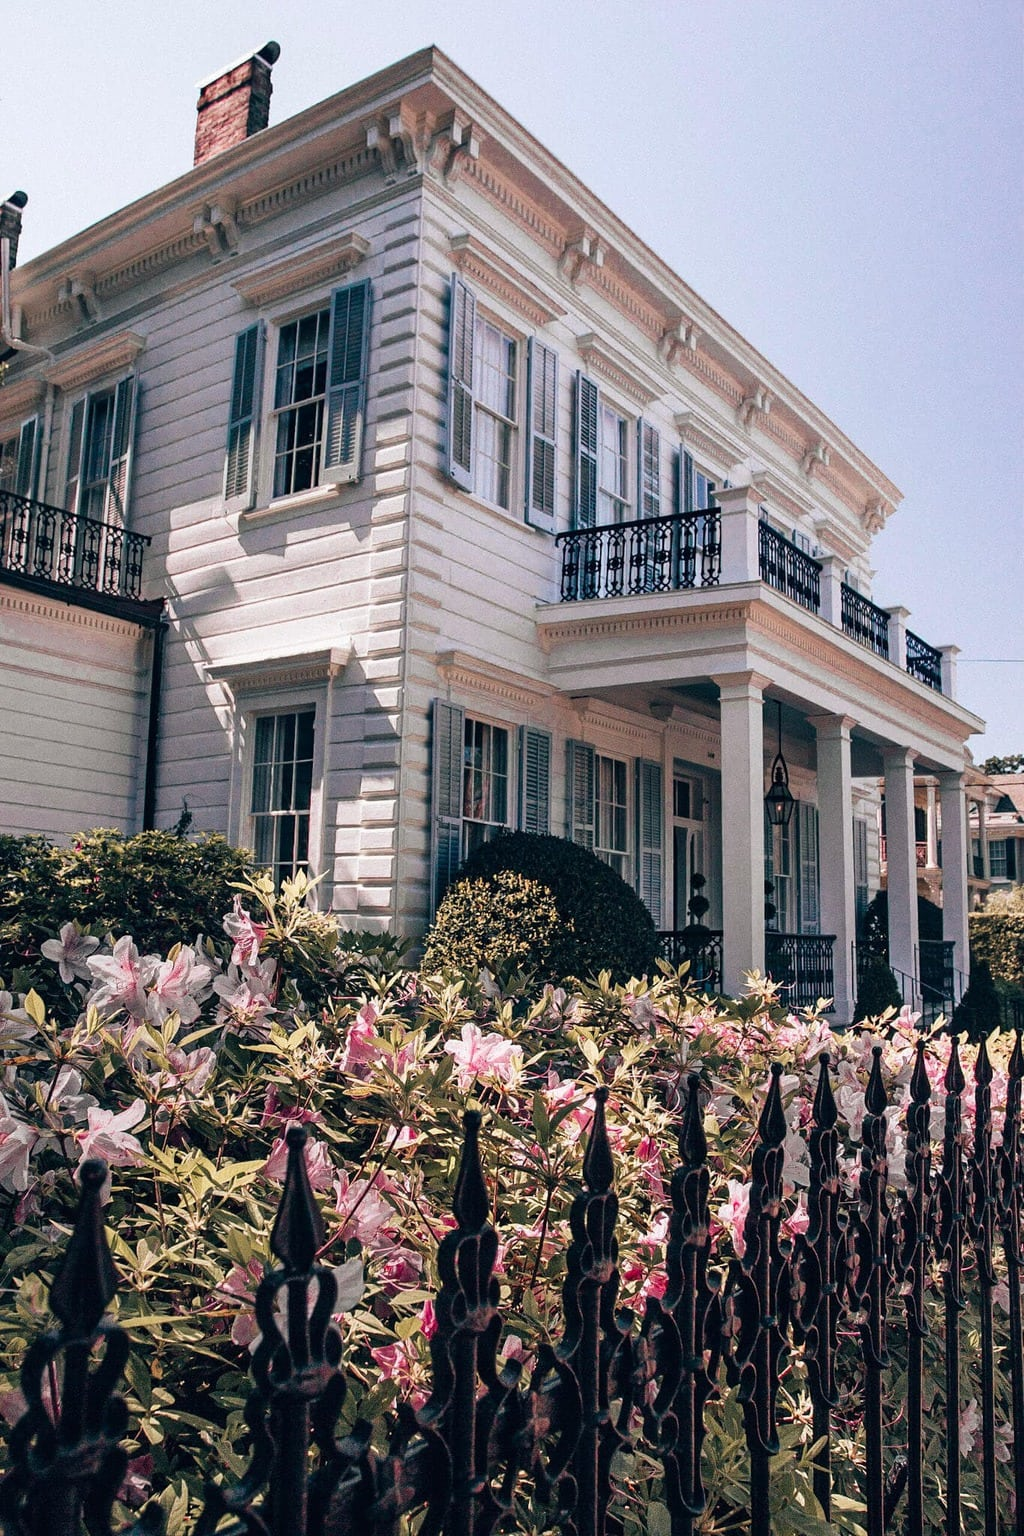 Beautiful home in Garden District in New Orleans with garden out front